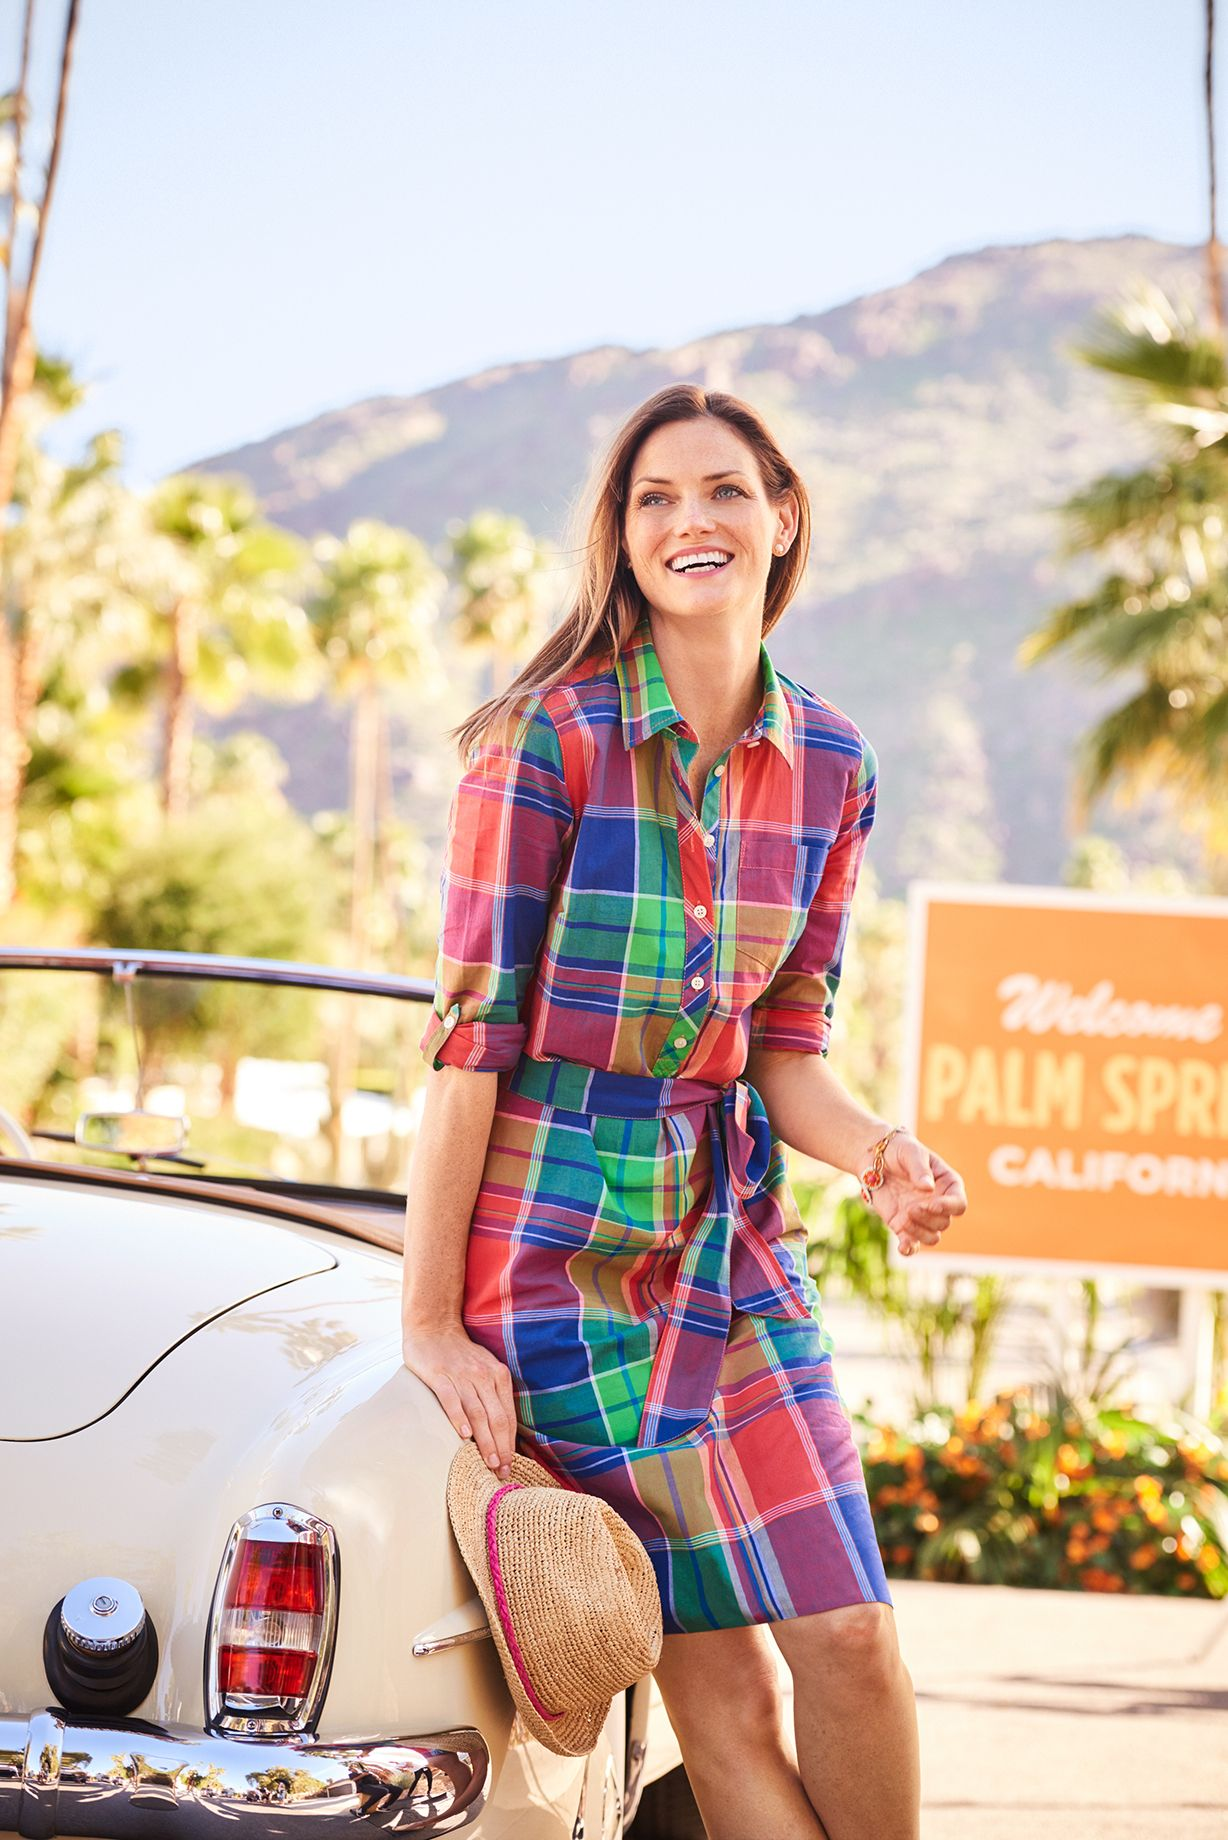 We Ve Punched Up The Classic Shirtdress With Playful Plaid Talbots Outfits Summer Attire Clothes For Women [ 1840 x 1228 Pixel ]